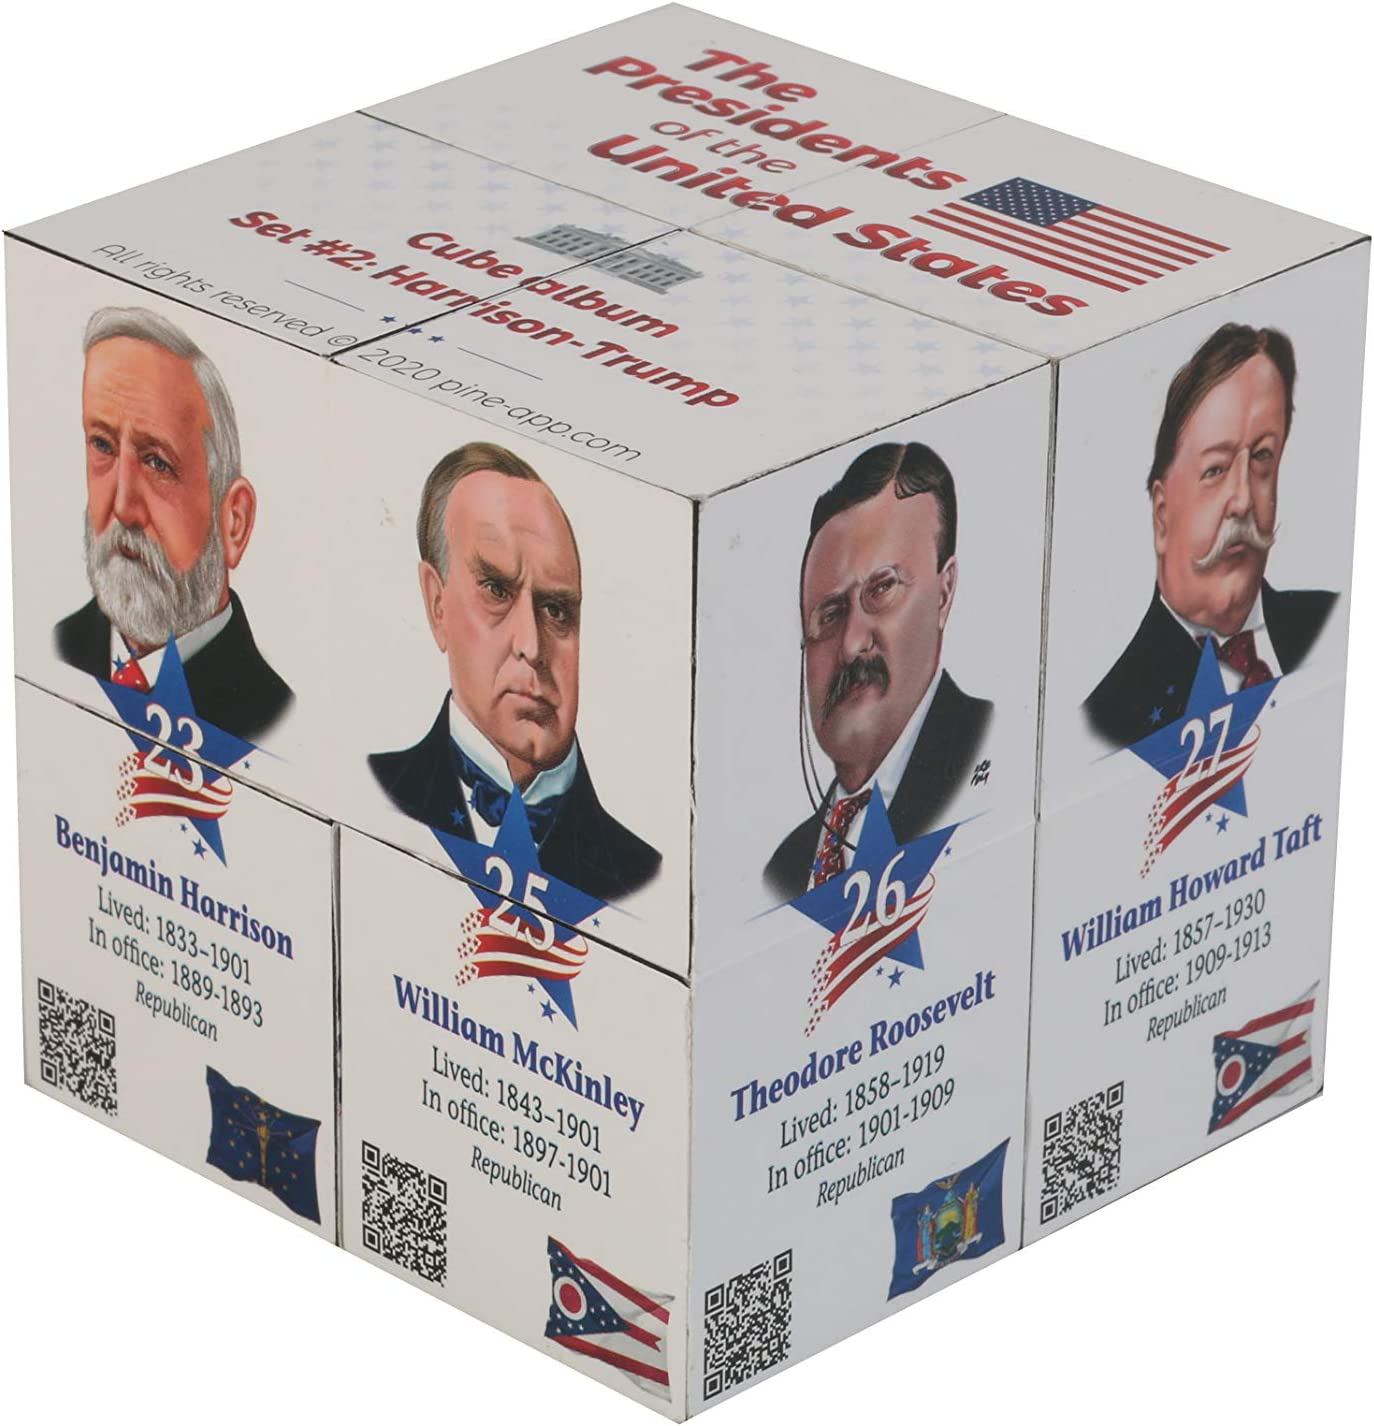 U.S Presidents Infinity Cube - Original, Fun 3D Educational for Kids and Adults - Learn About 22 American Presidents in an Easy and Entertaining Way - for History Buffs Set #2